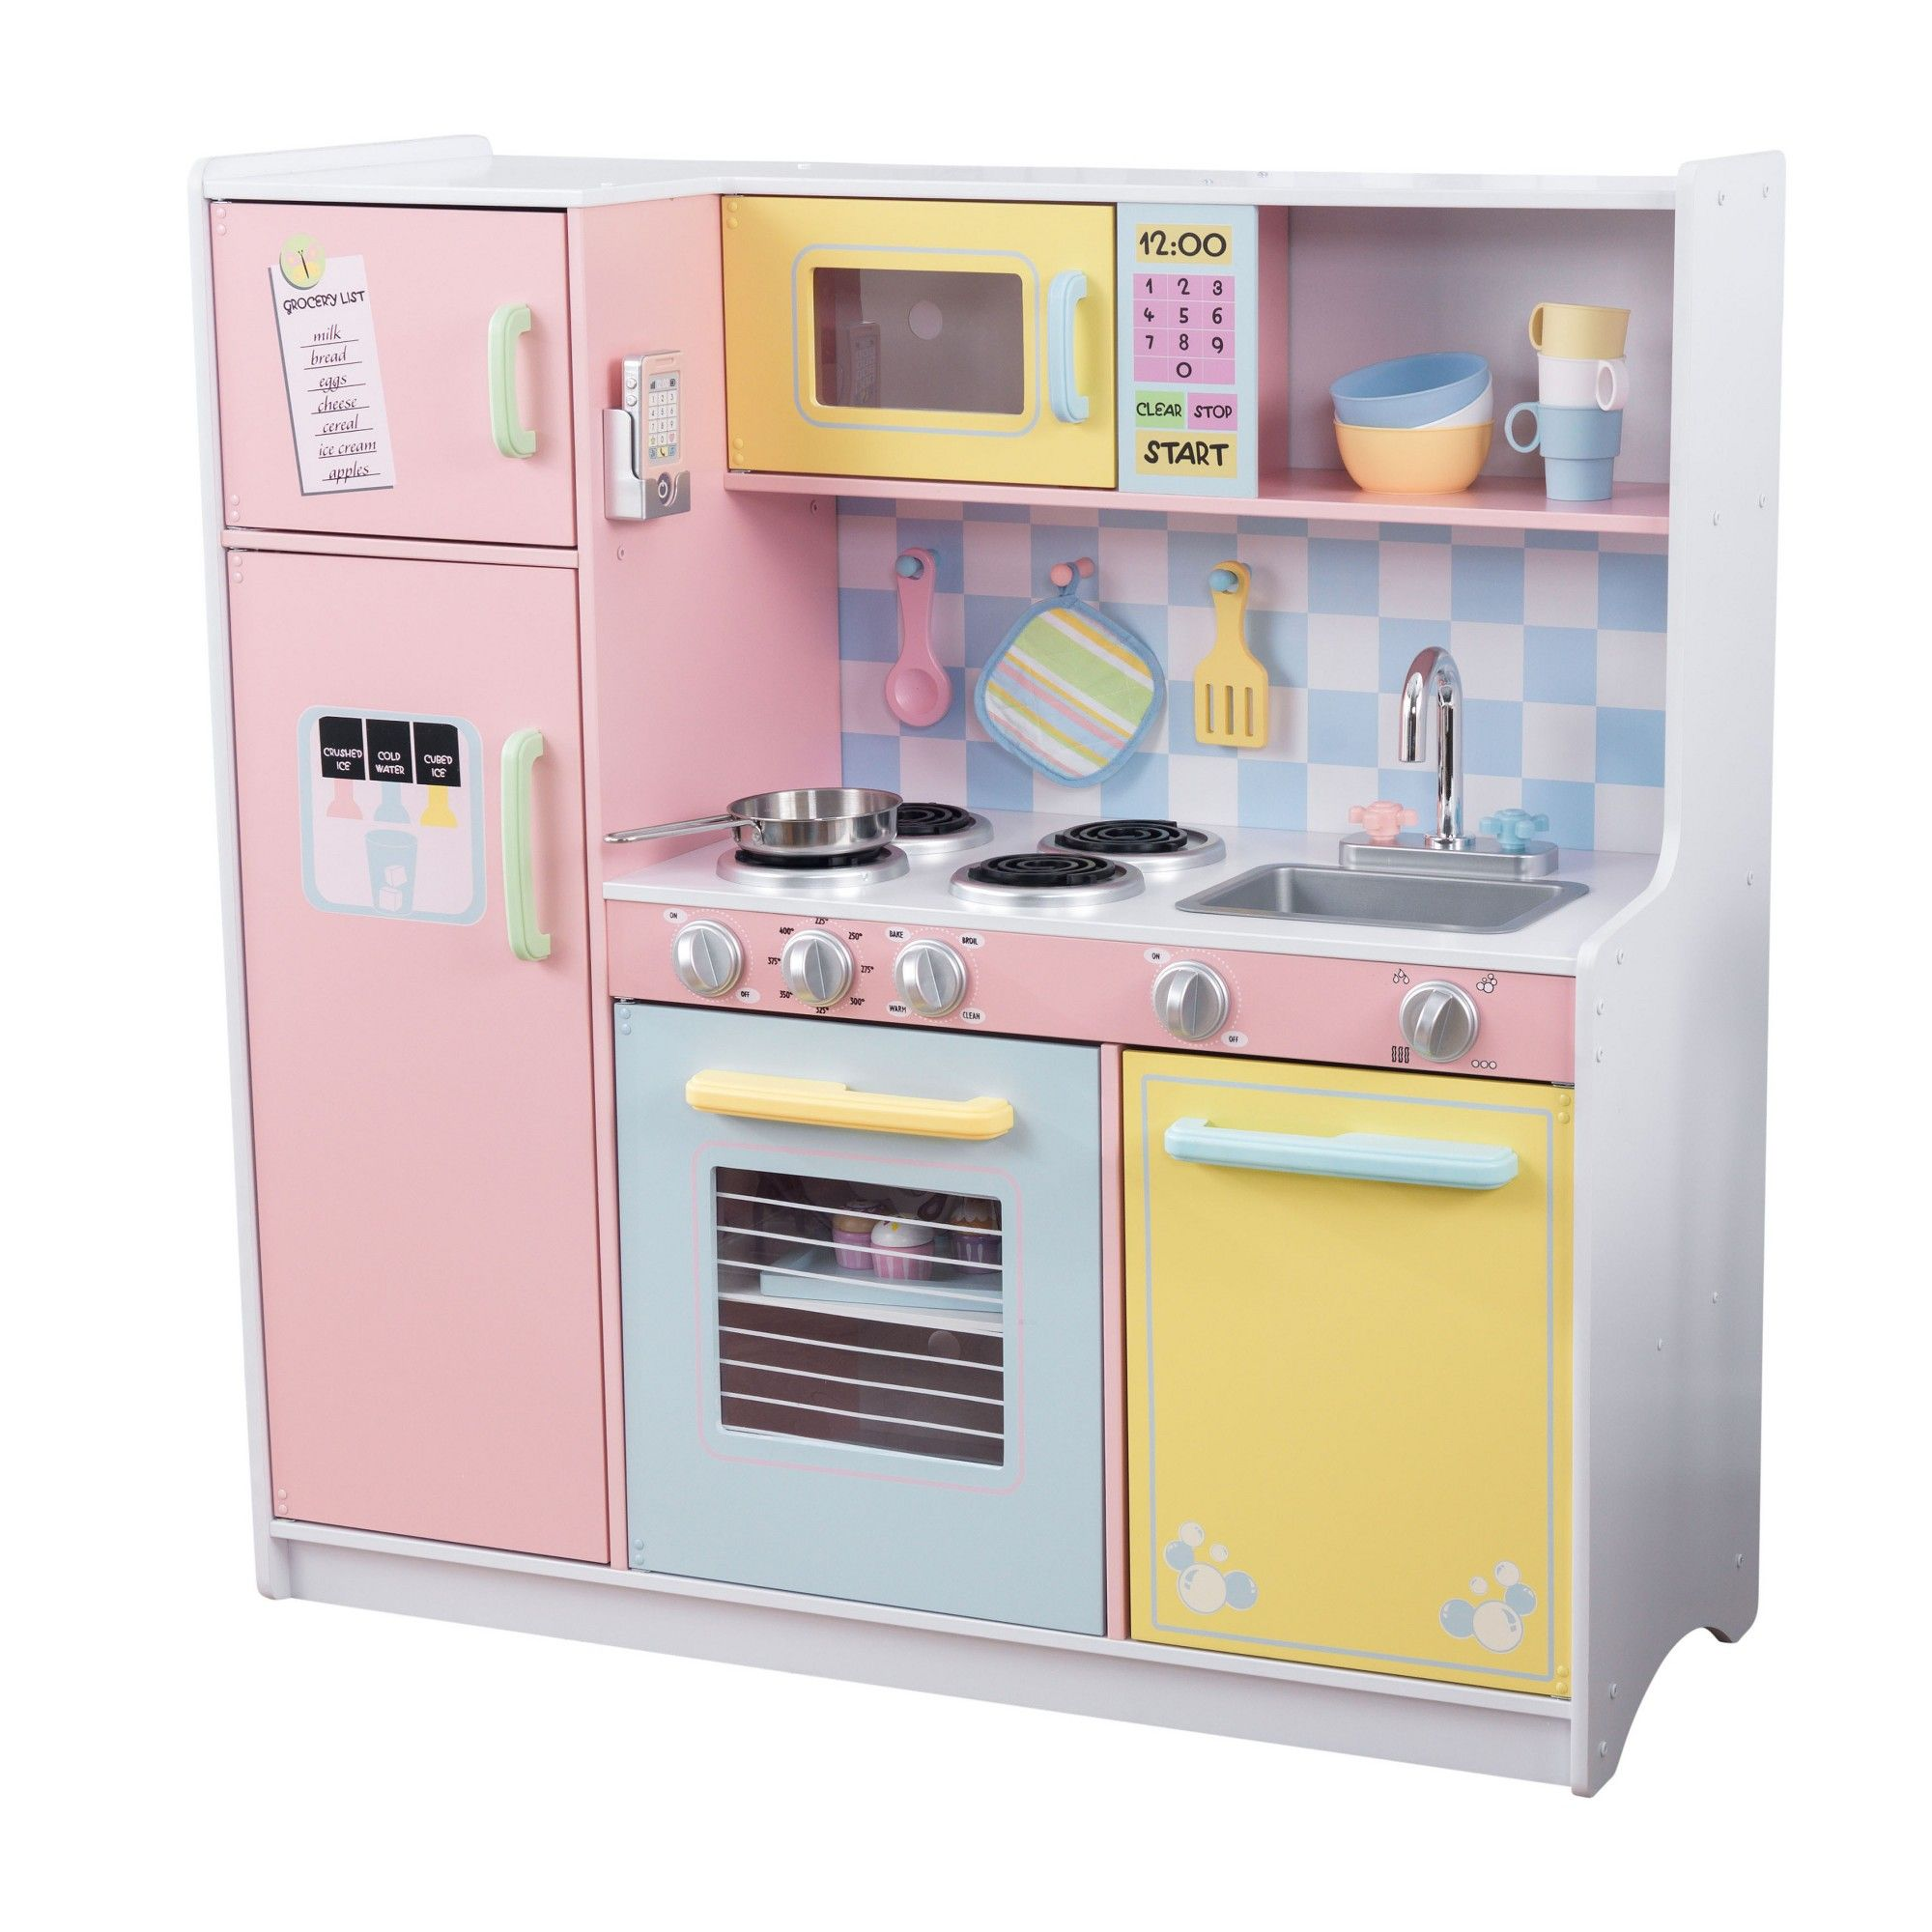 Kidkraft Küche Modern Country Kidkraft Large Pastel Kitchen Are You Looking For Toys To Give